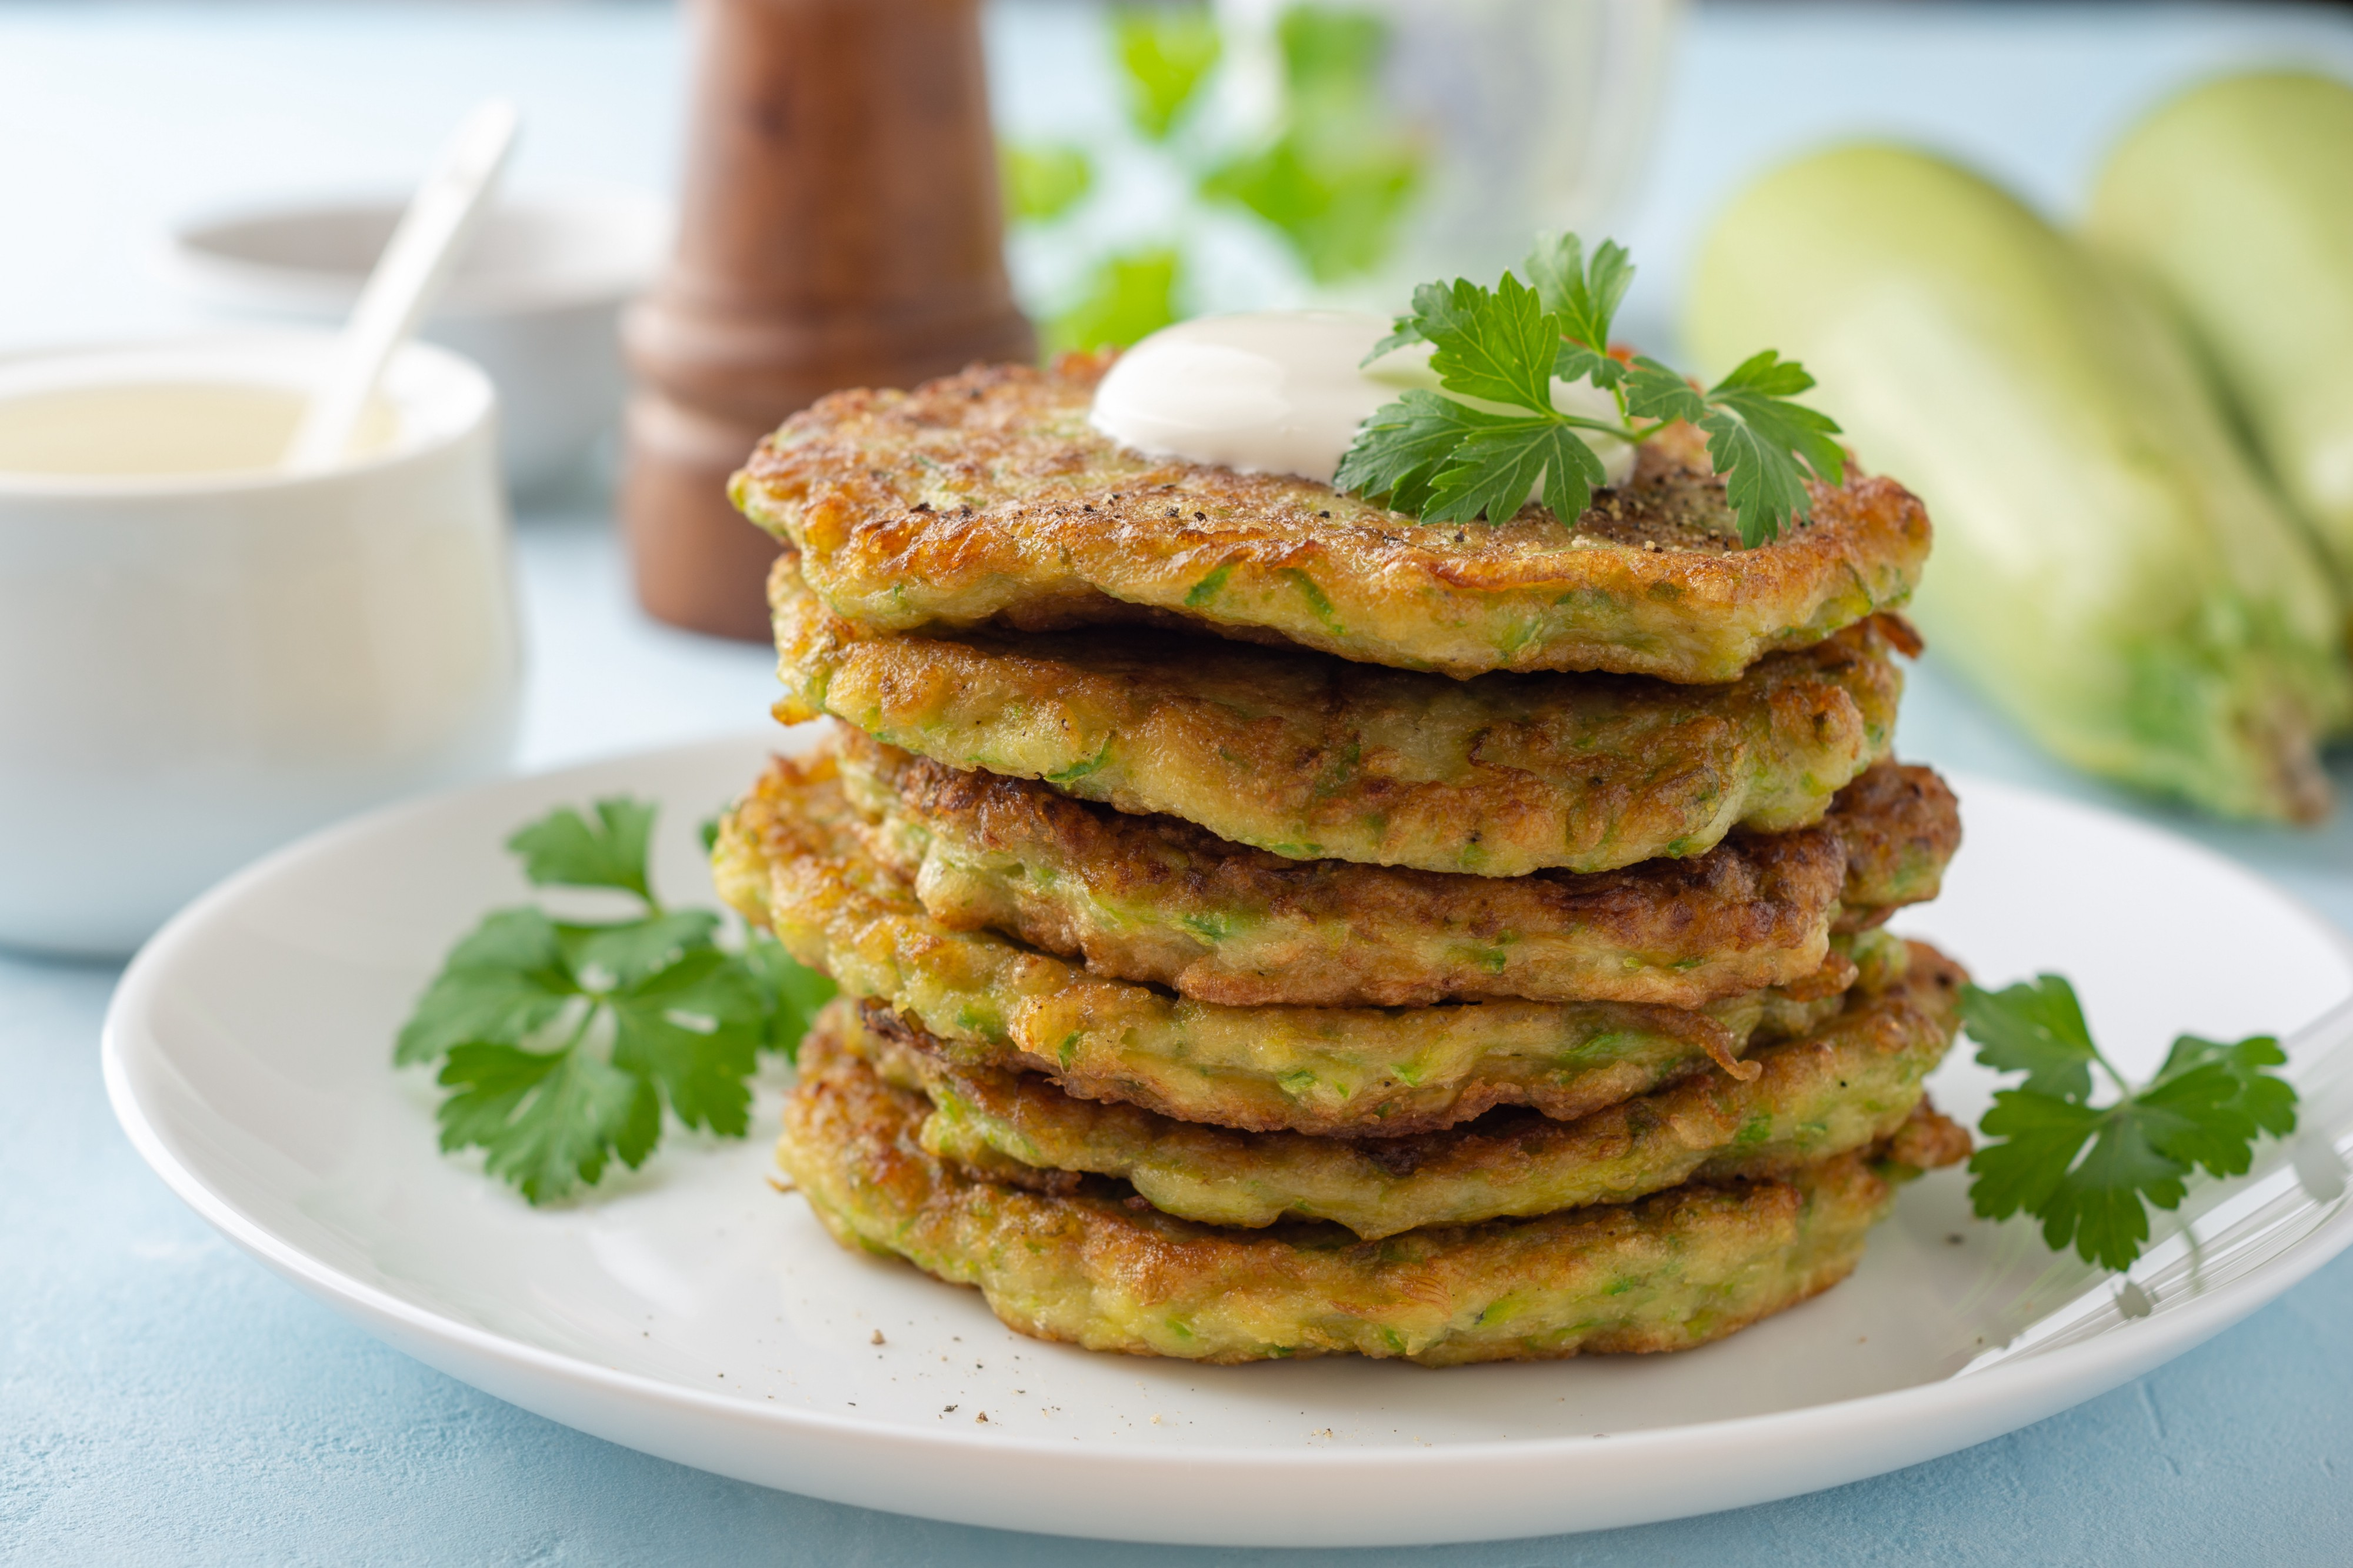 Zucchini fritters with fresh parsley and sour cream on a plate on a blue concrete background.